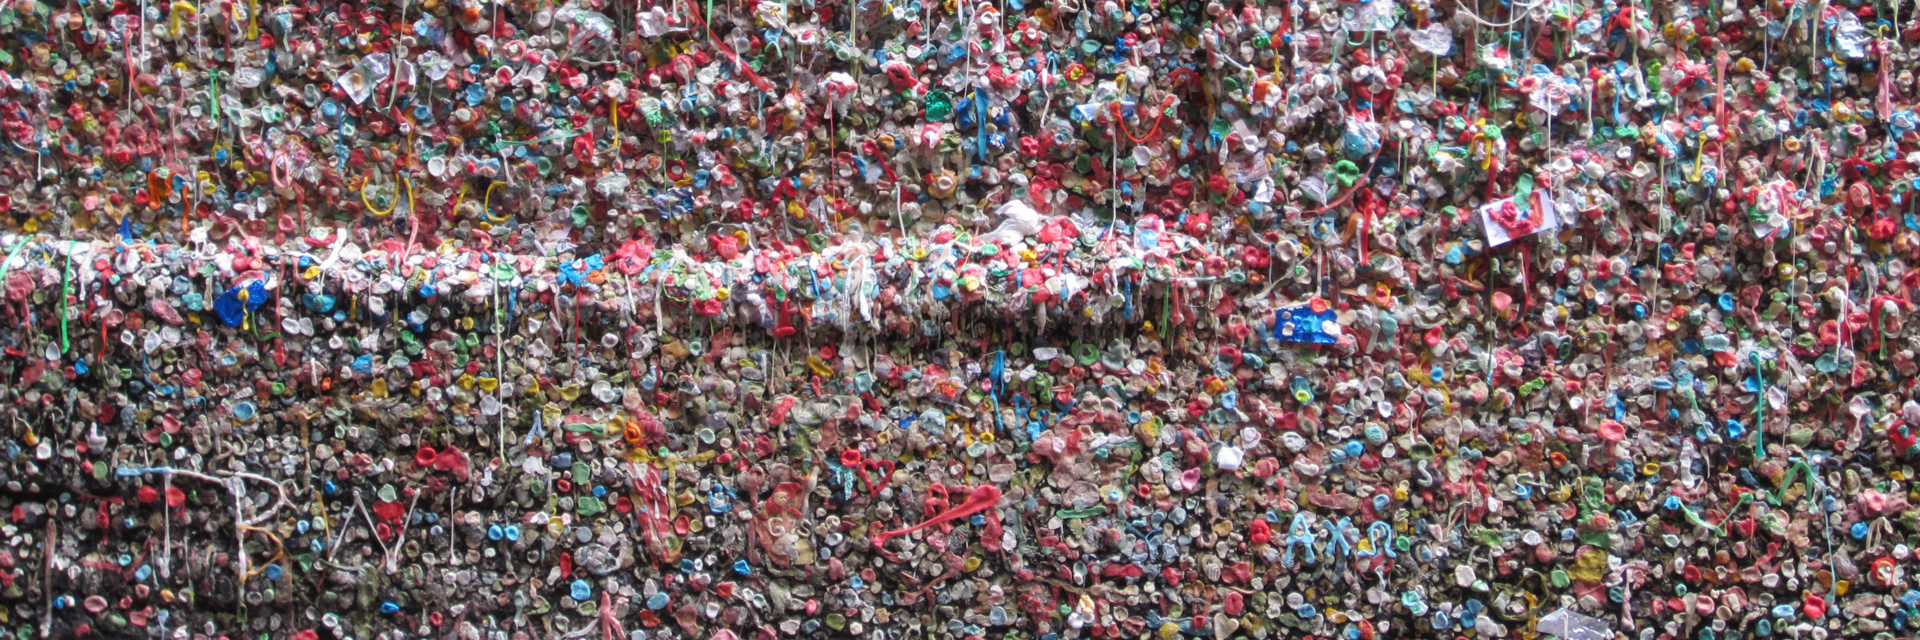 Gum Wall — Another Believer [CC BY-SA 3.0 (https://creativecommons.org/licenses/by-sa/3.0)], from Wikimedia Commons | Archer Hotel Redmond